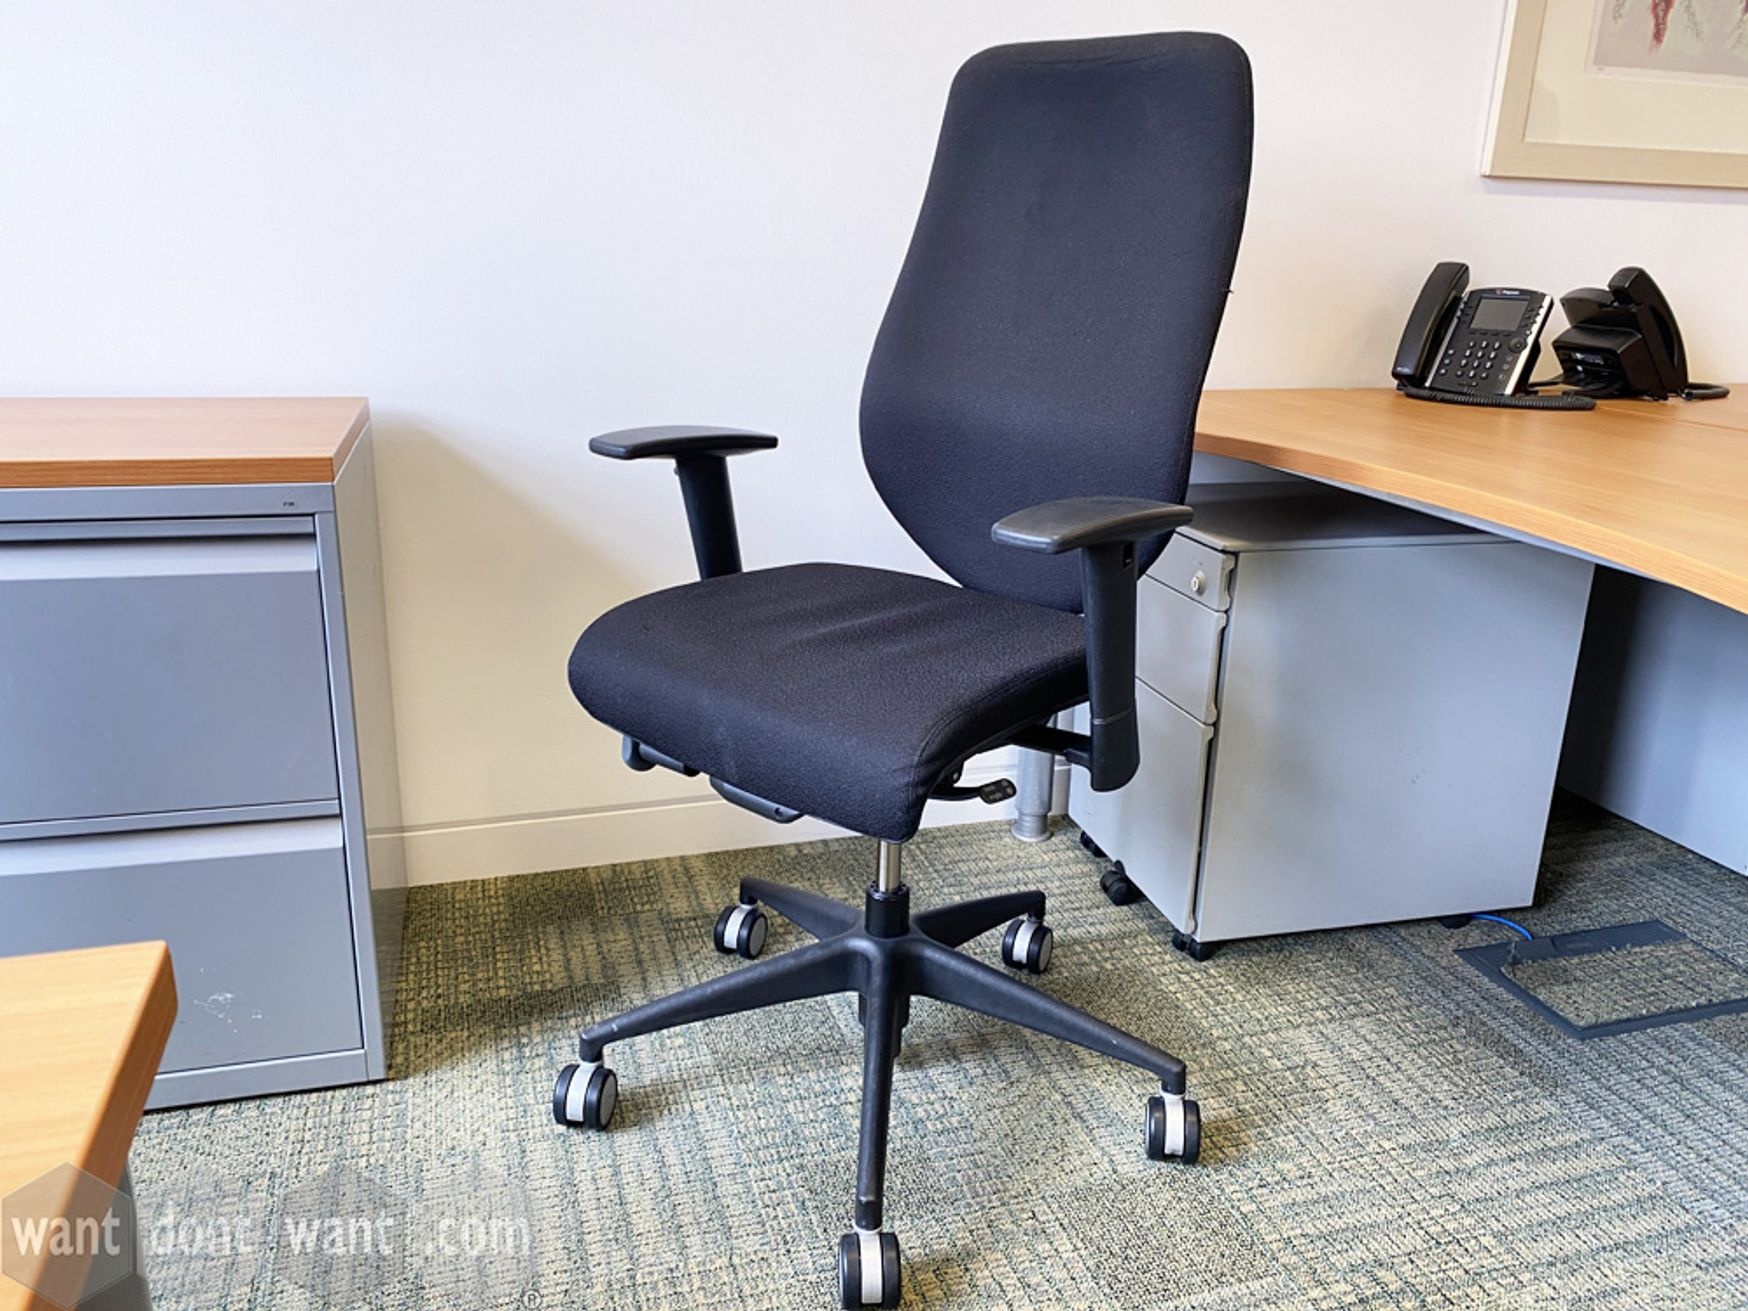 Used Komac task chairs upholstered in black fabric